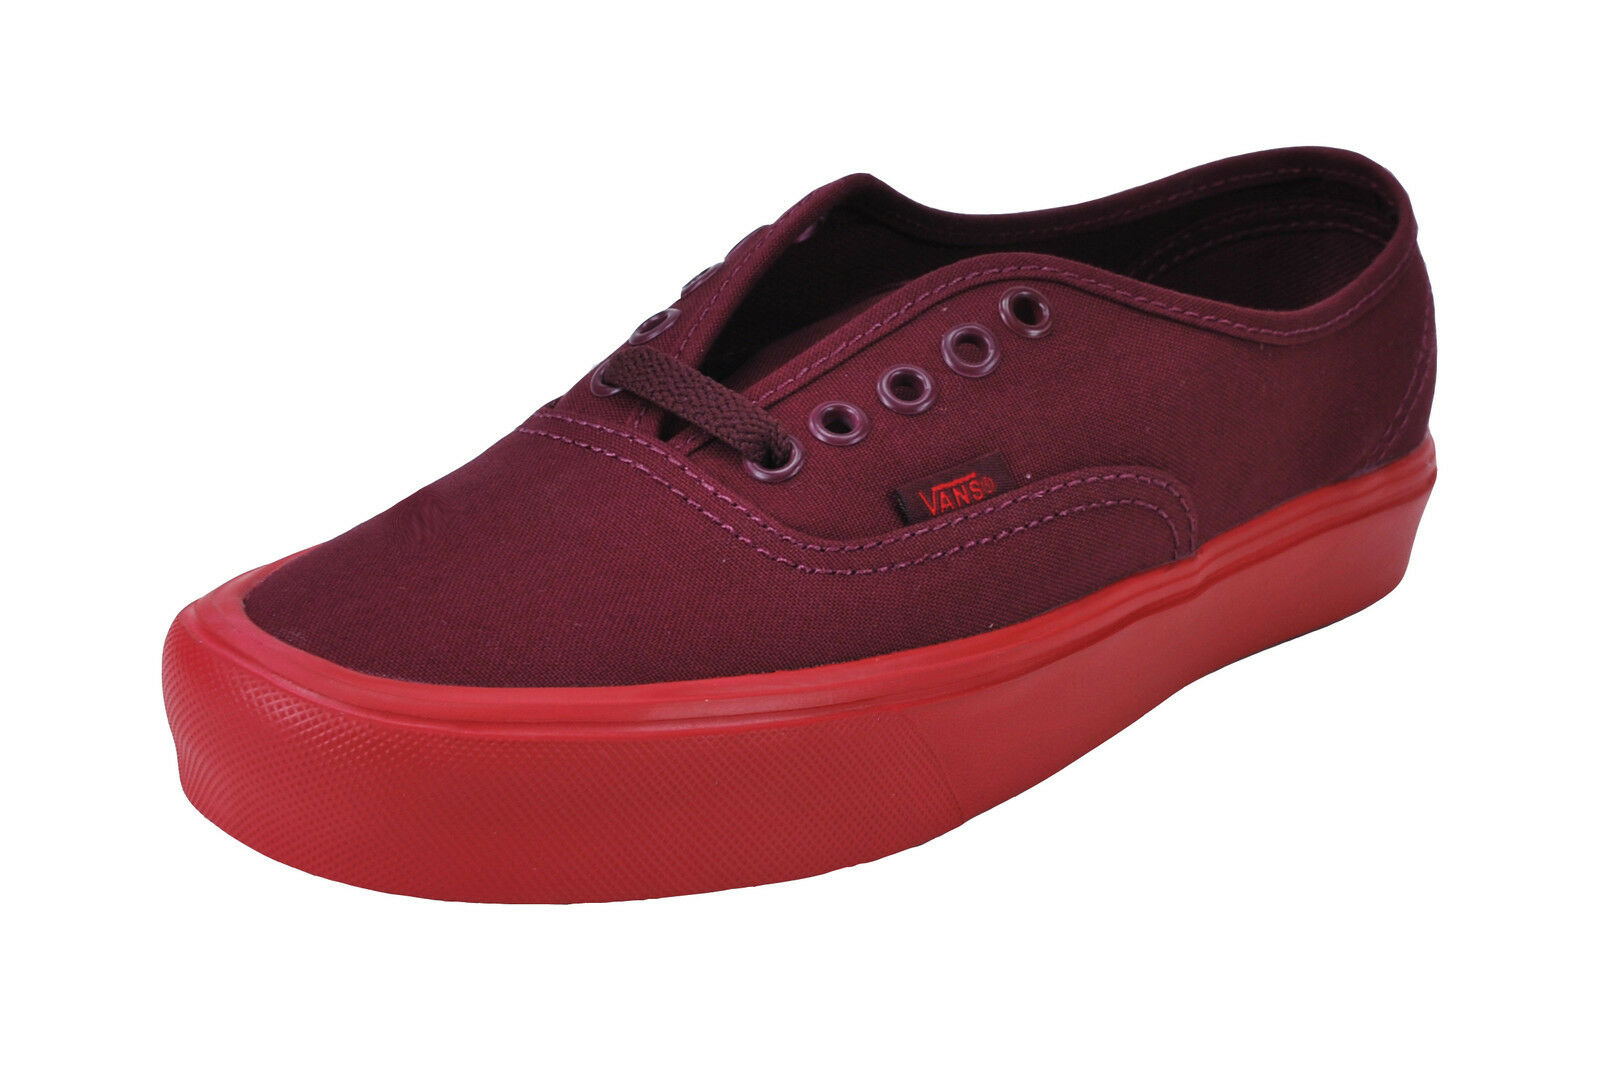 cae7d214978 Vans Men Women shoes Authentic Lite Weight Port Royale Red Red Red Burgundy  Canvas Sneake 82daf1